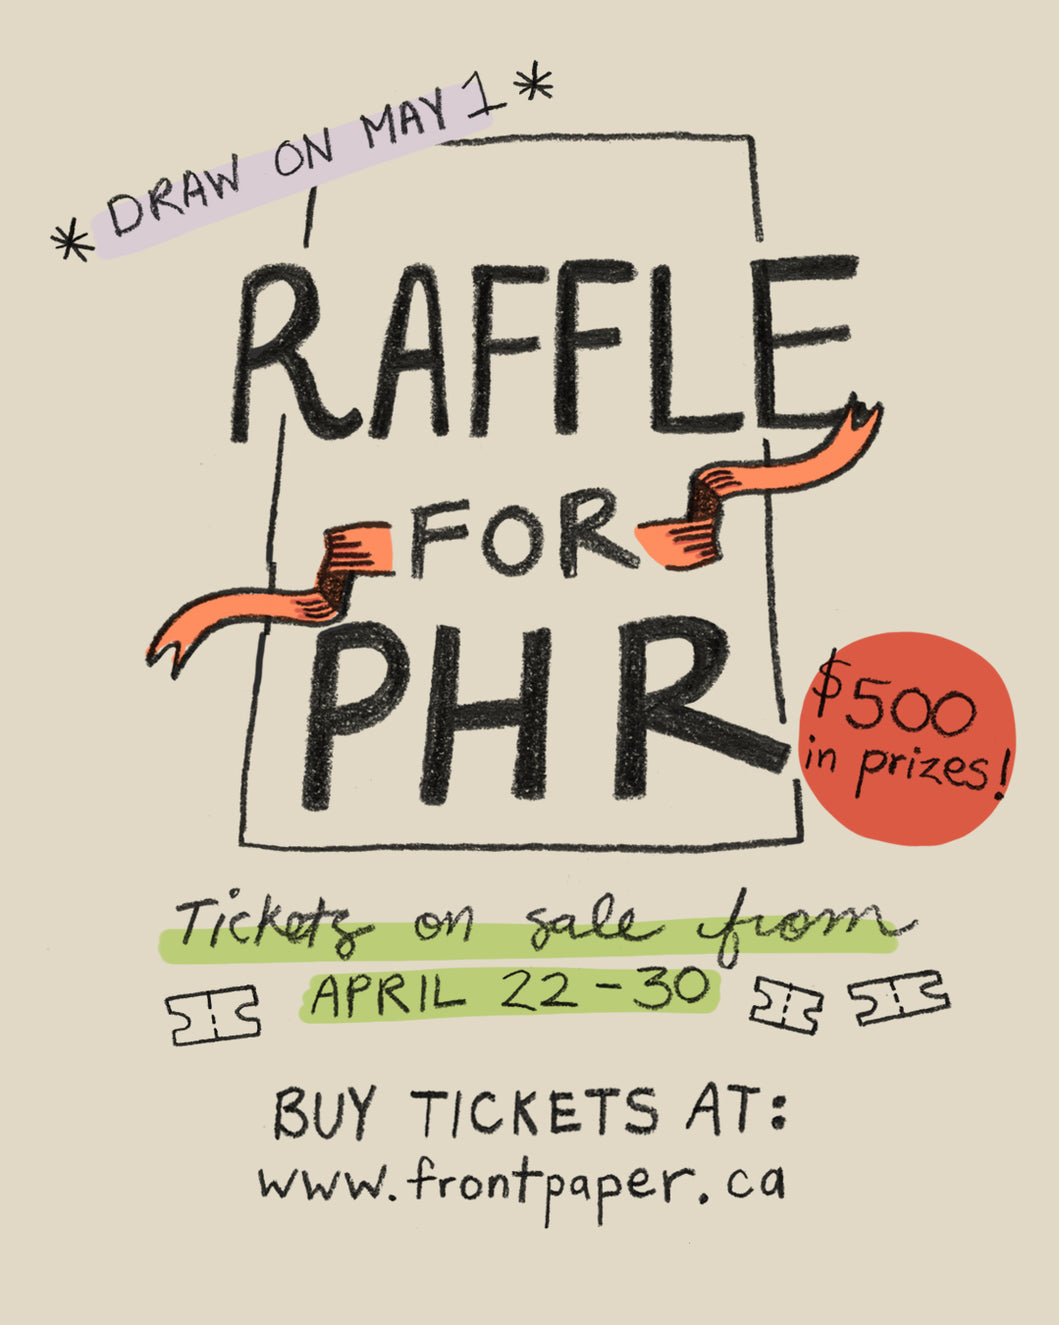 PHR Raffle Tickets